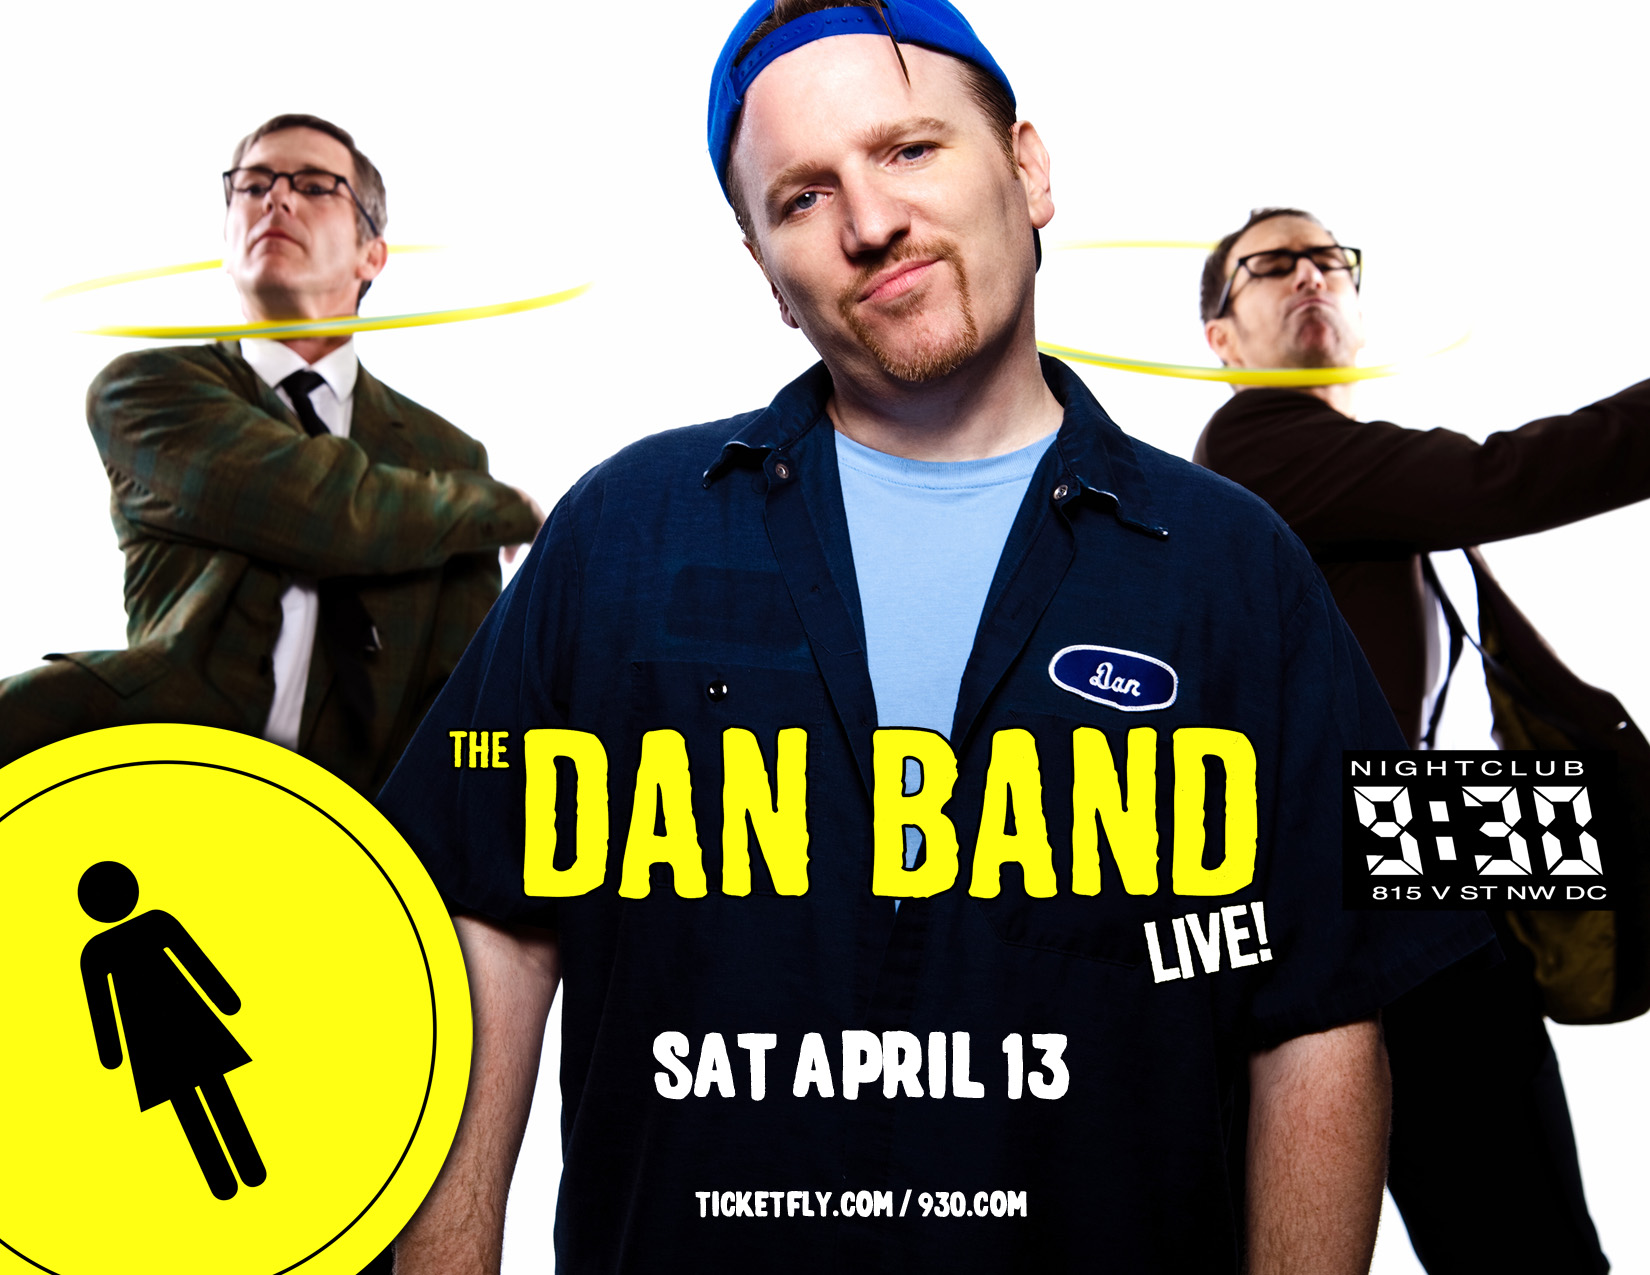 Dan Band Ticket Giveaway!